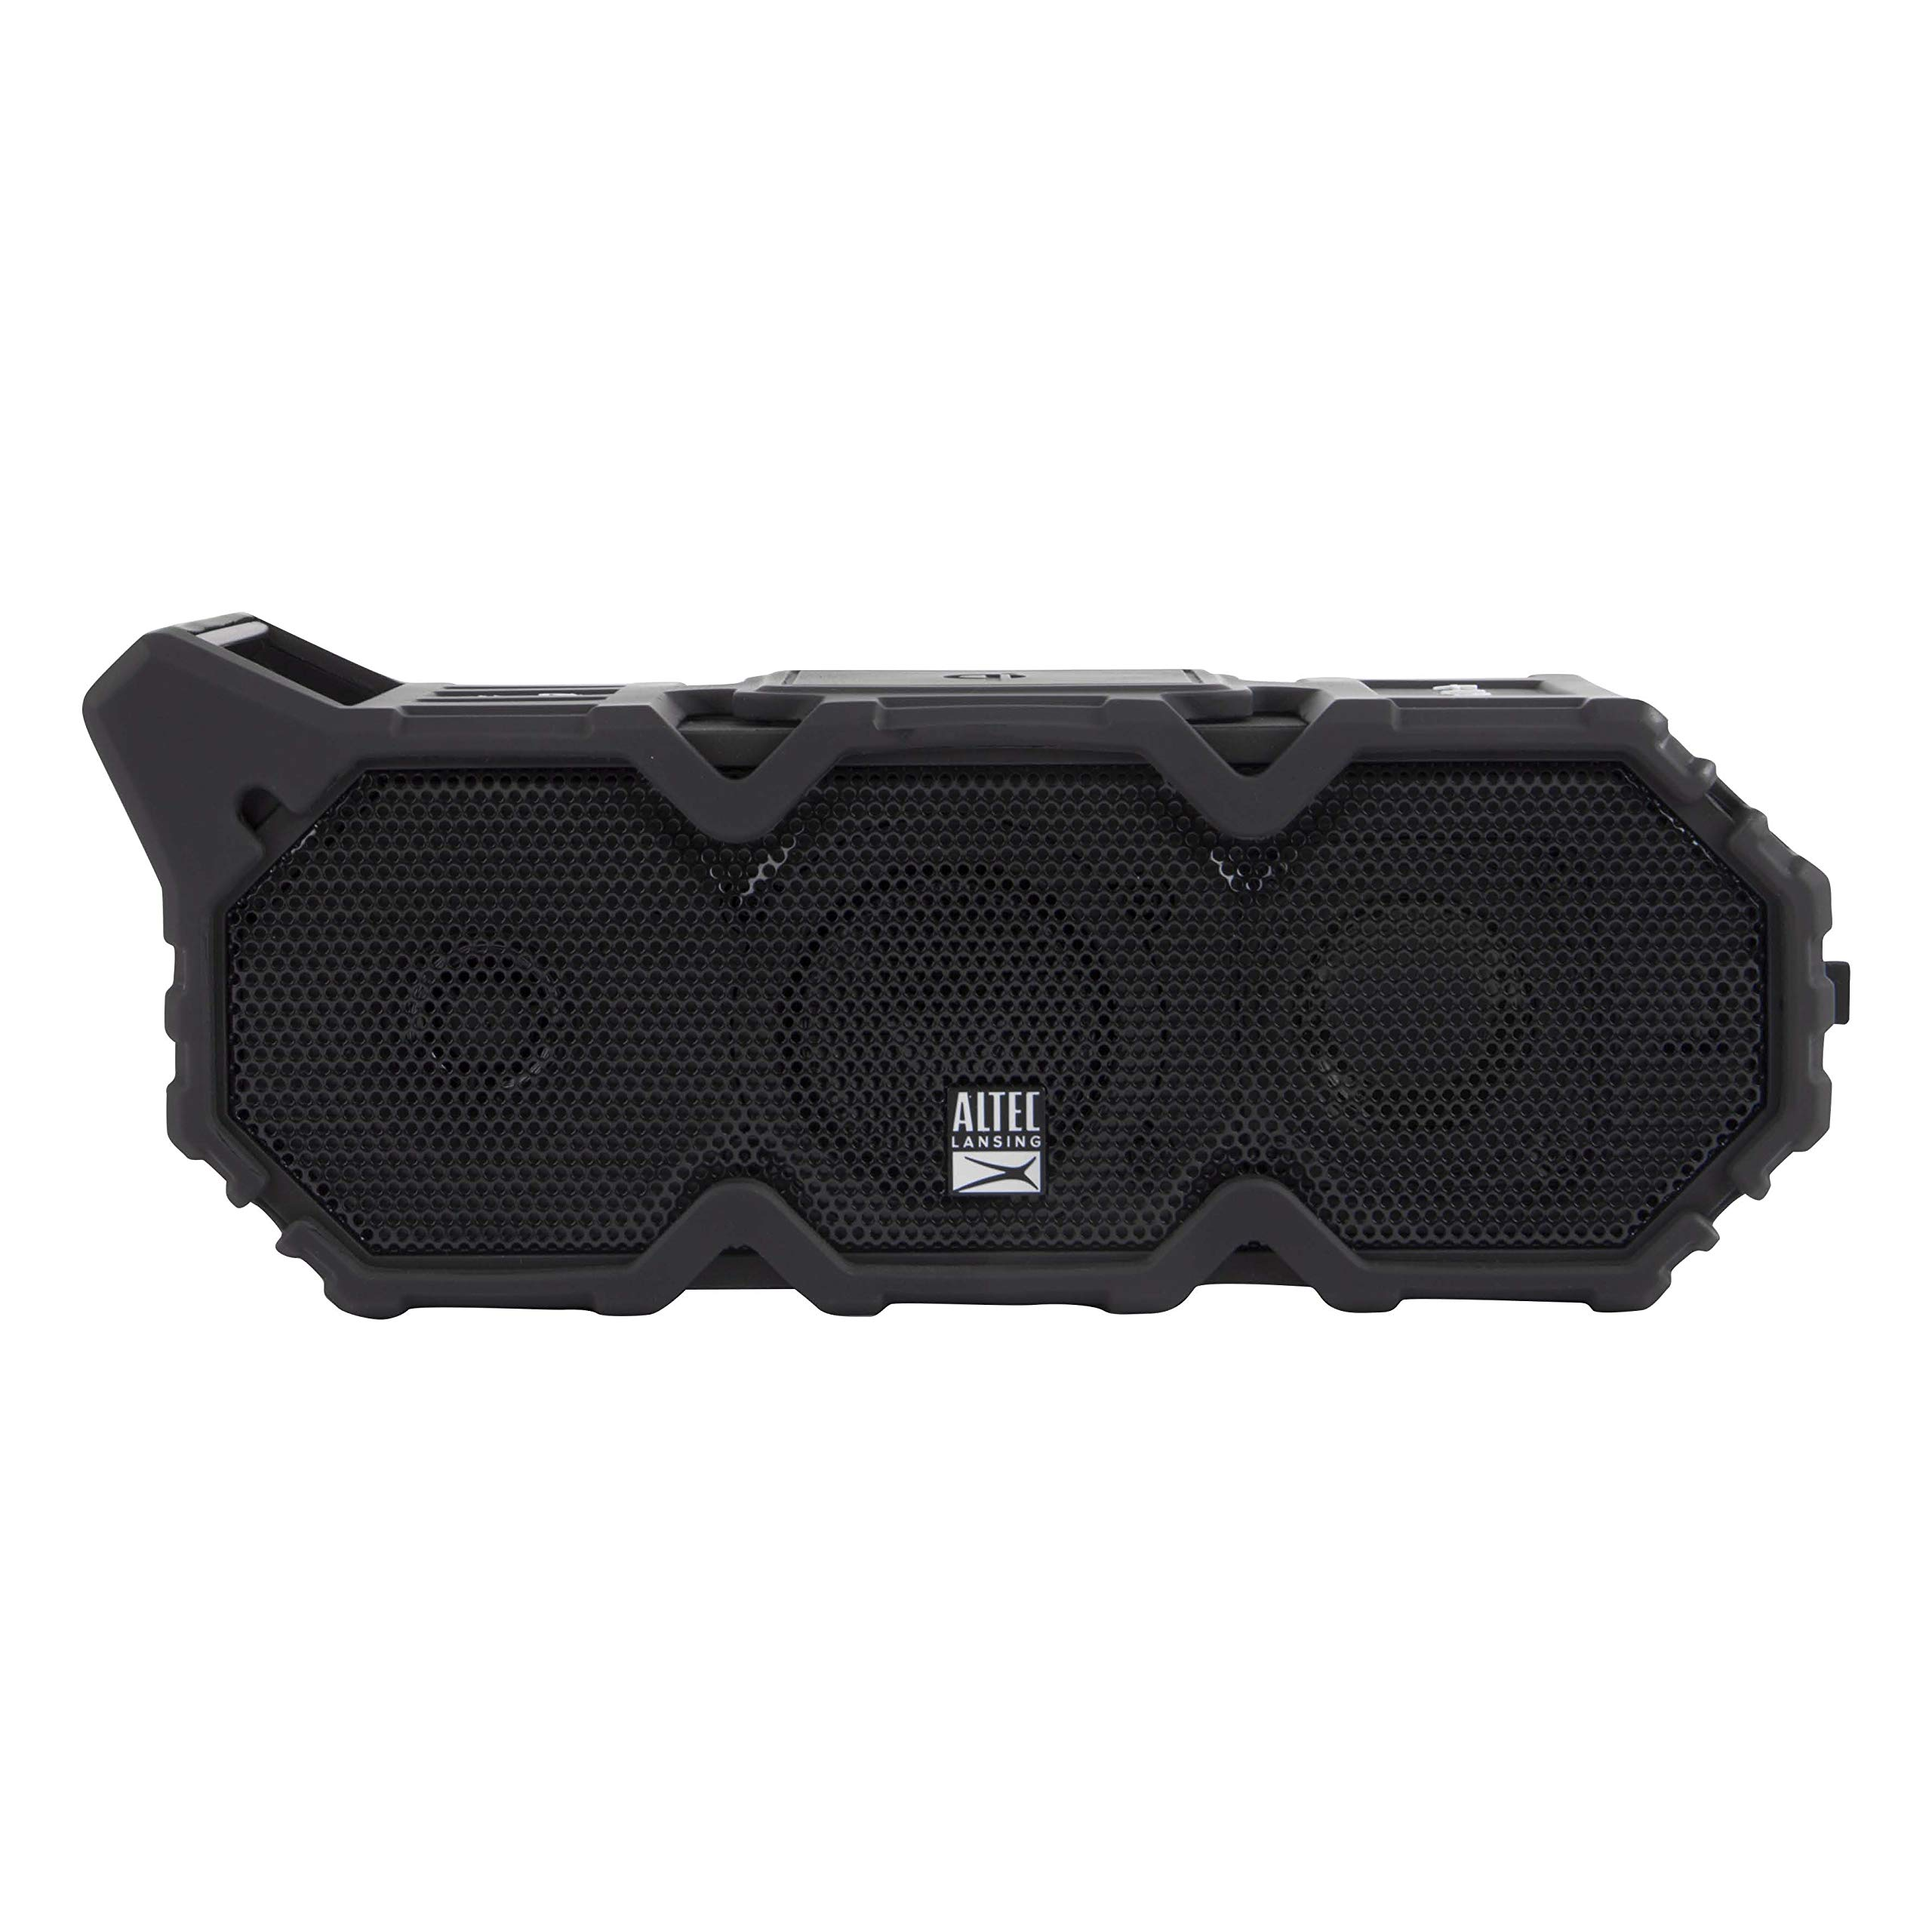 Altec Lansing Imw790-blkc Lifejacket Xl Jolt Heavy Duty...